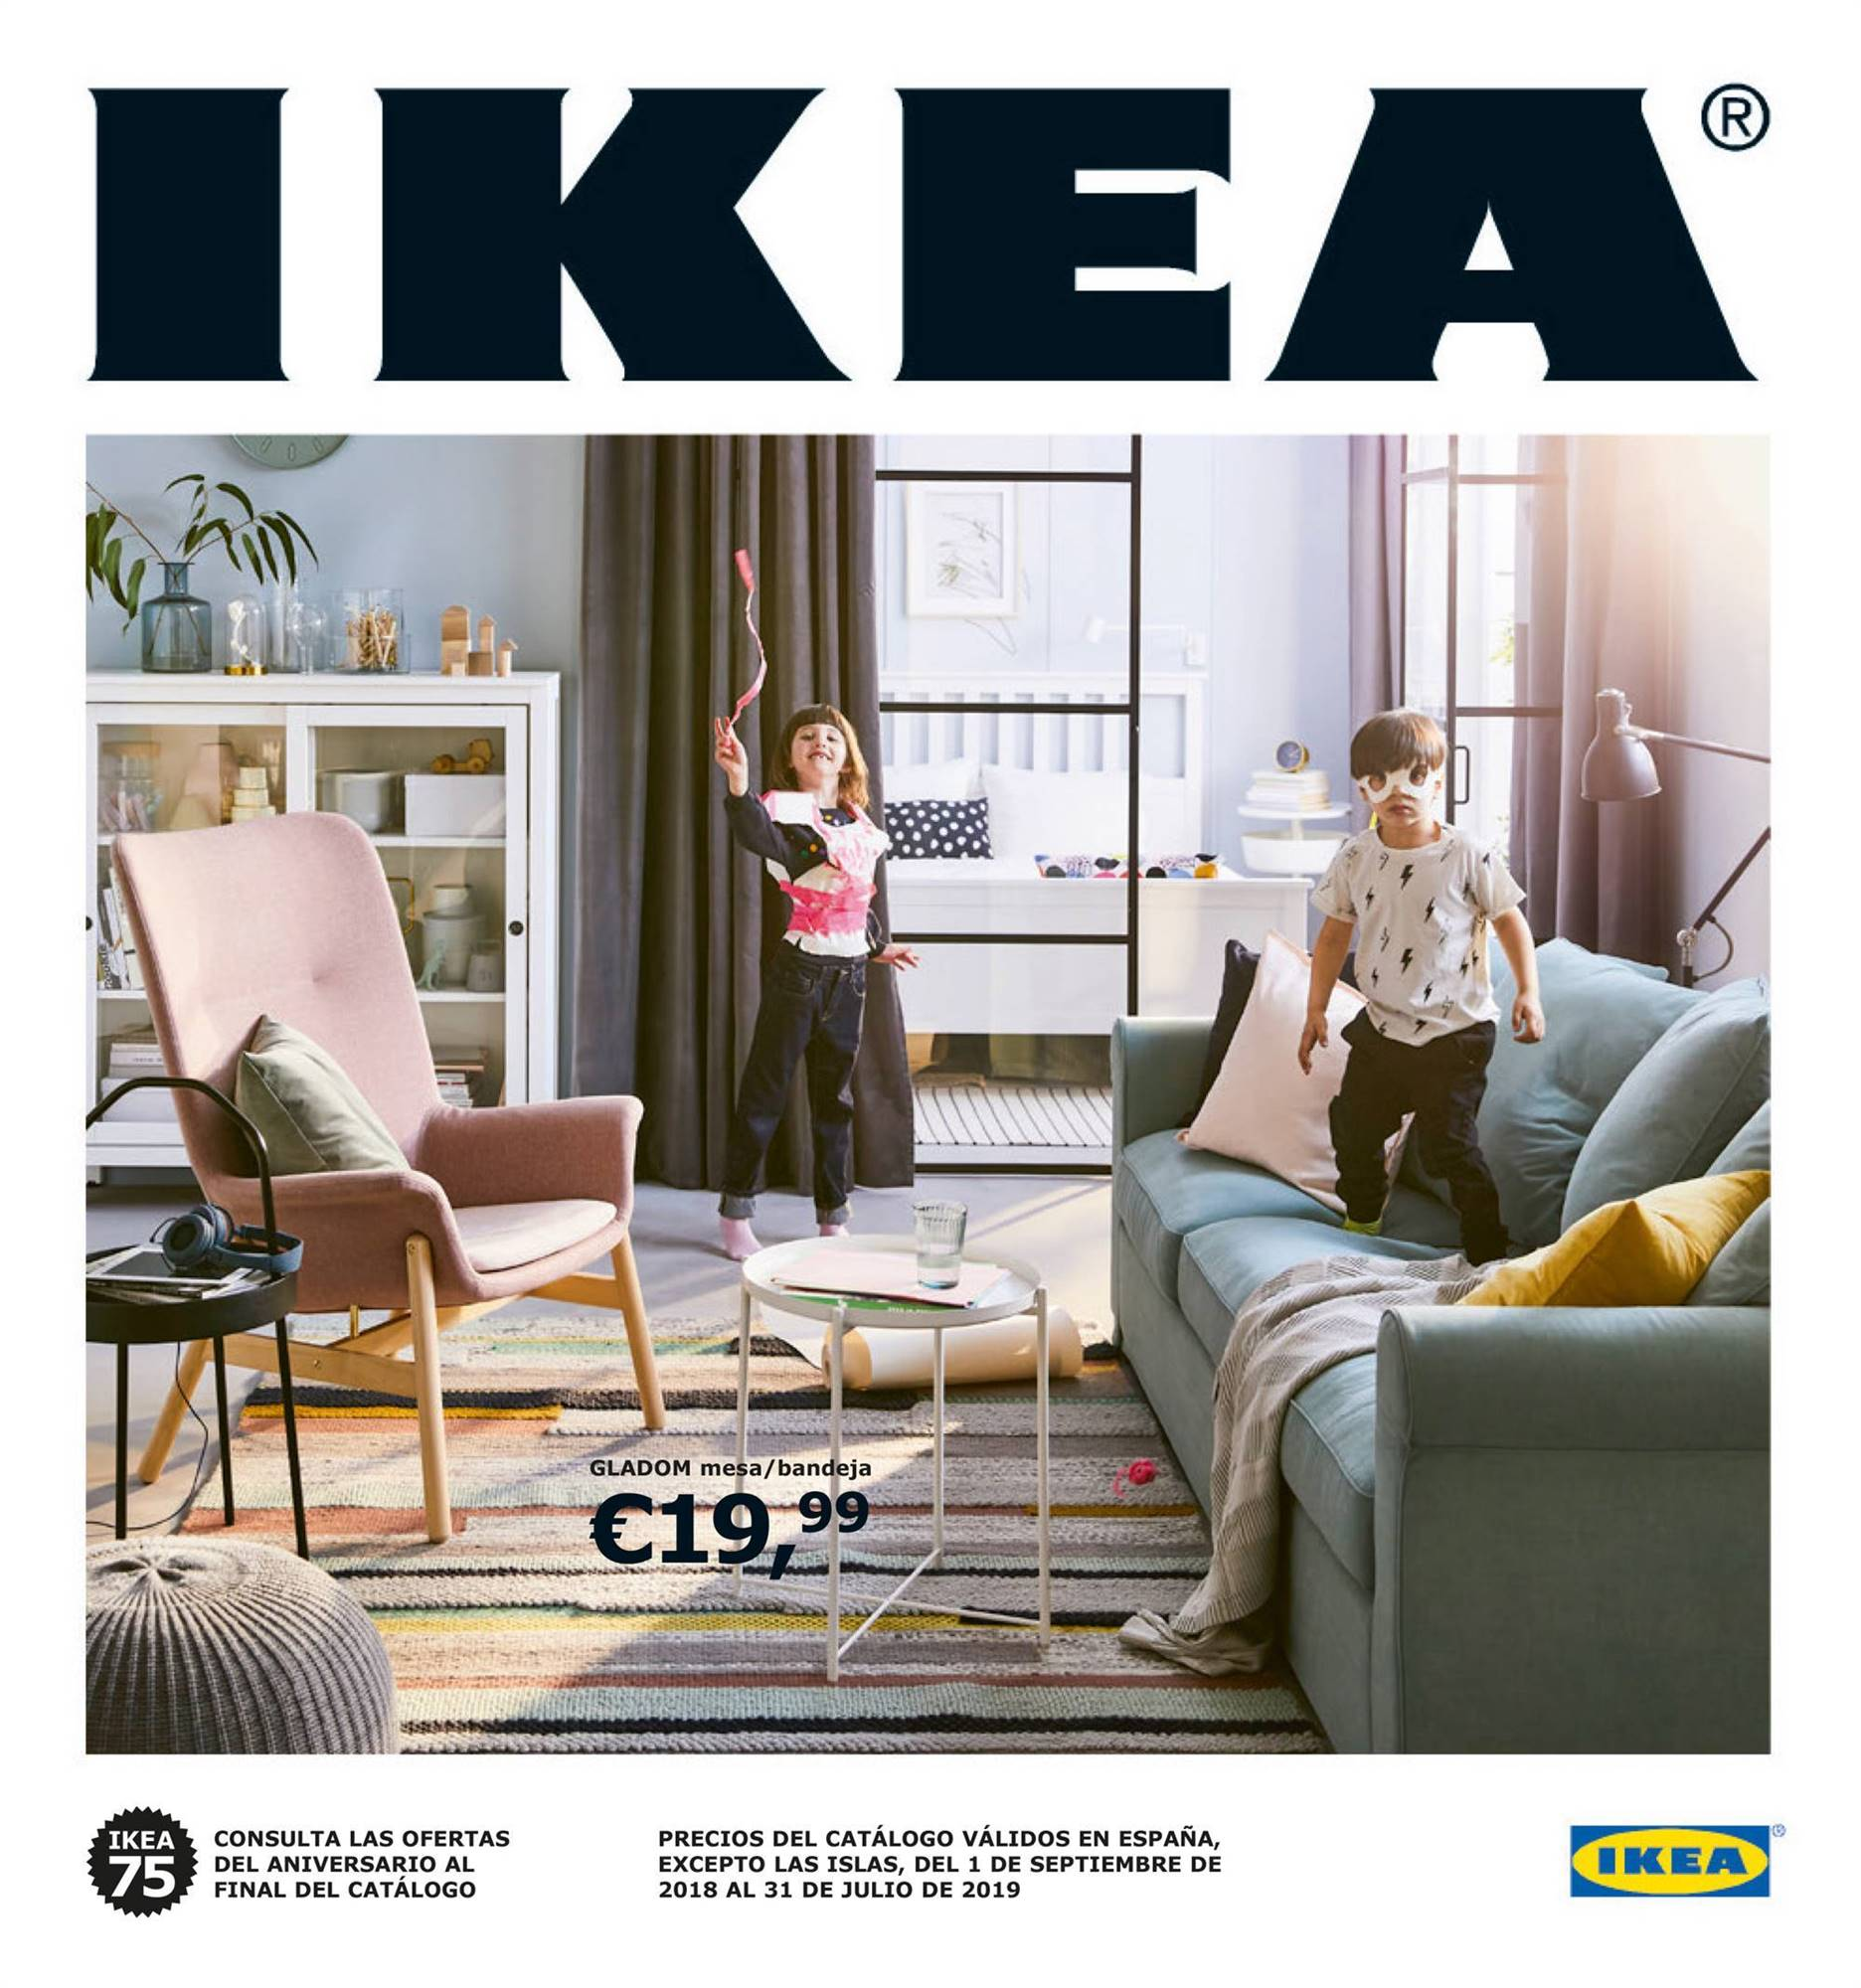 el nuevo cat logo de ikea 2019 ya est aqu. Black Bedroom Furniture Sets. Home Design Ideas